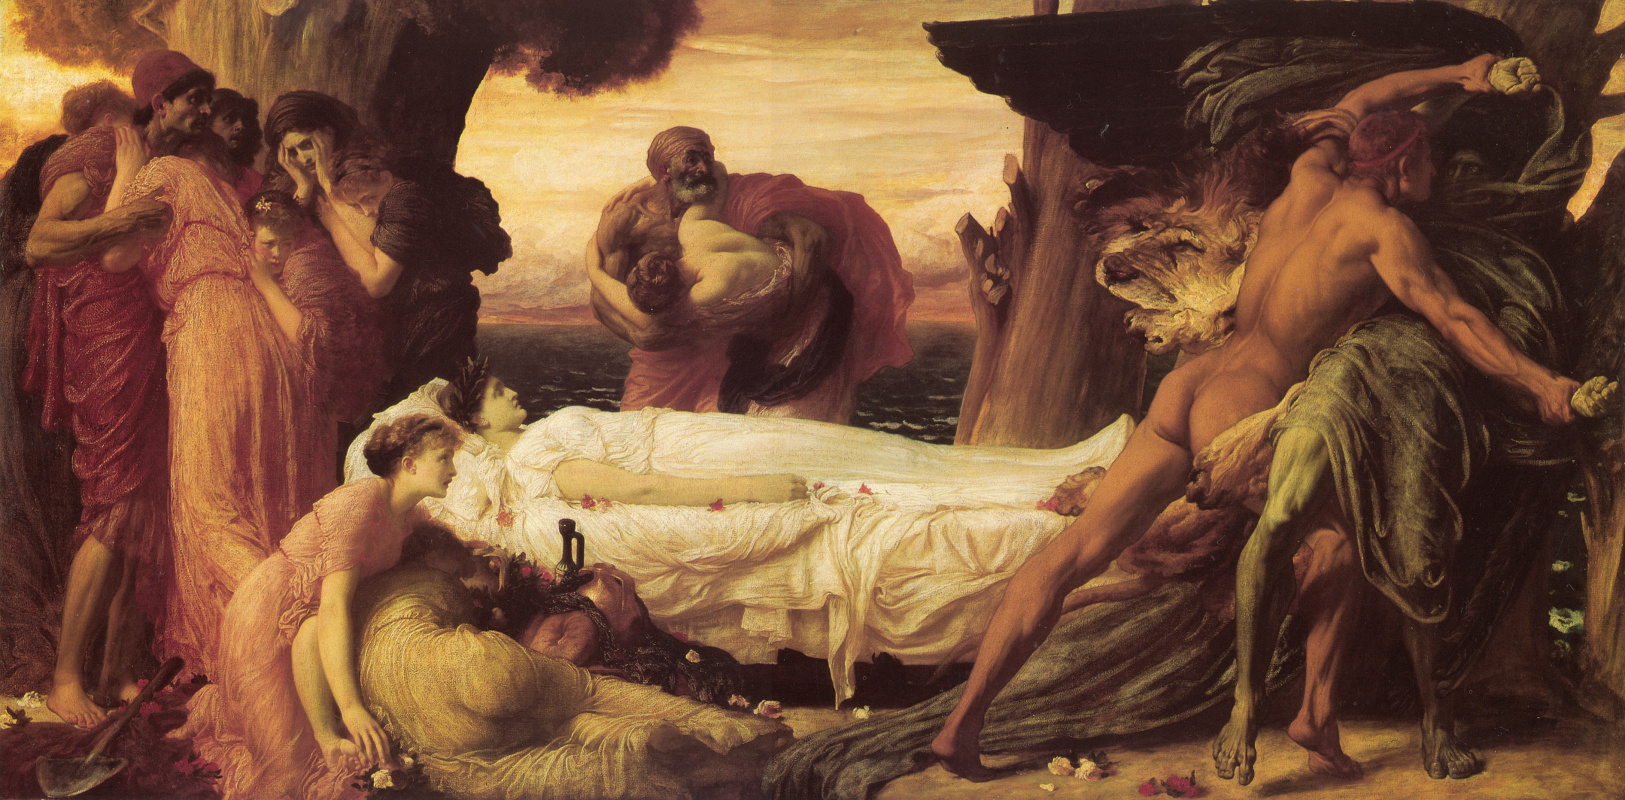 Frederic Leighton. The Fight of Hercules and Death for Alcesta's body